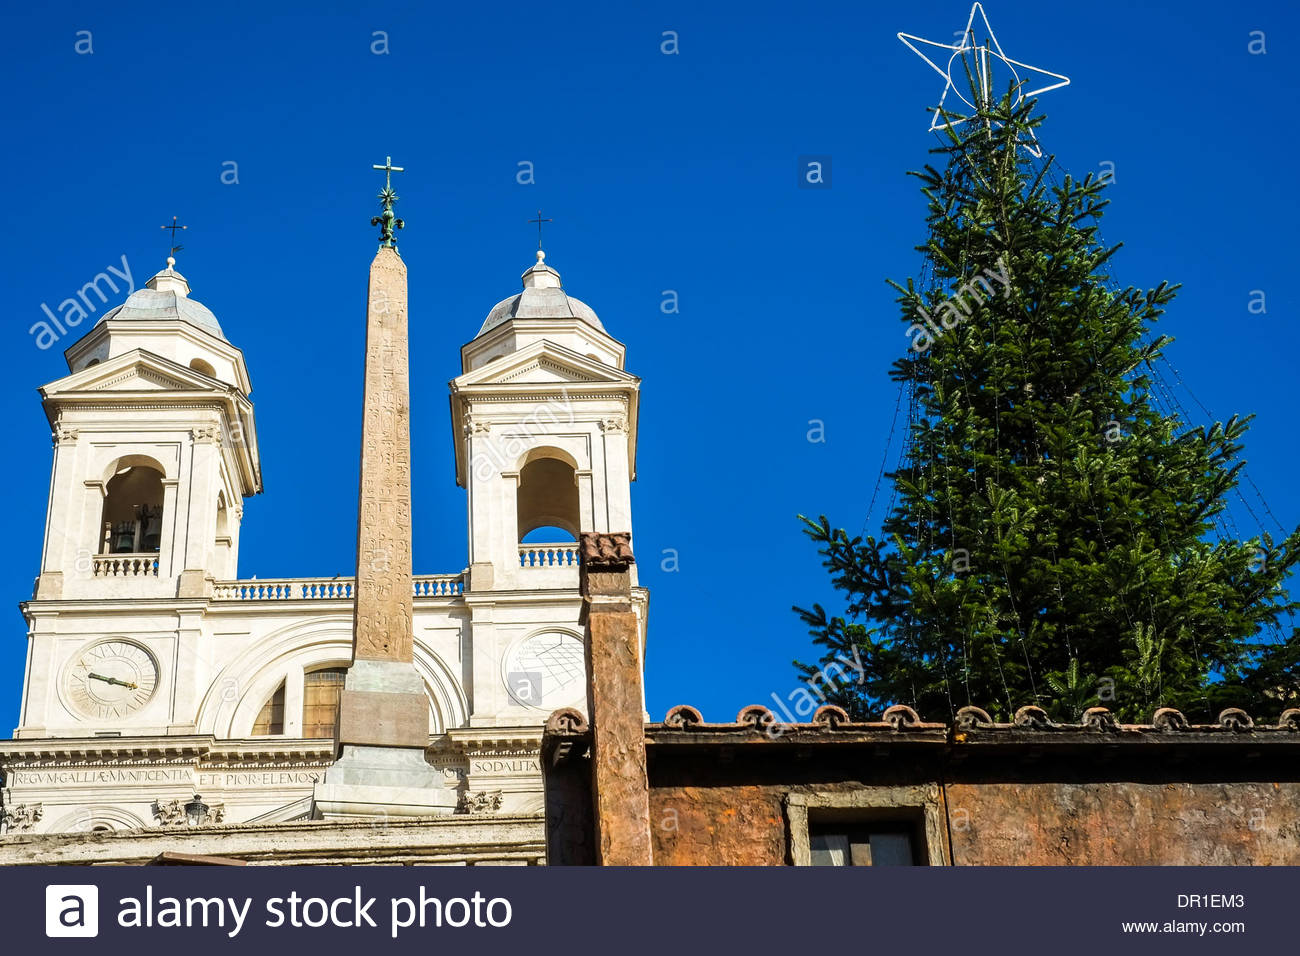 Piazza di Spagna Christmas tree Spanish steps stairs Rome Italy - Stock Image